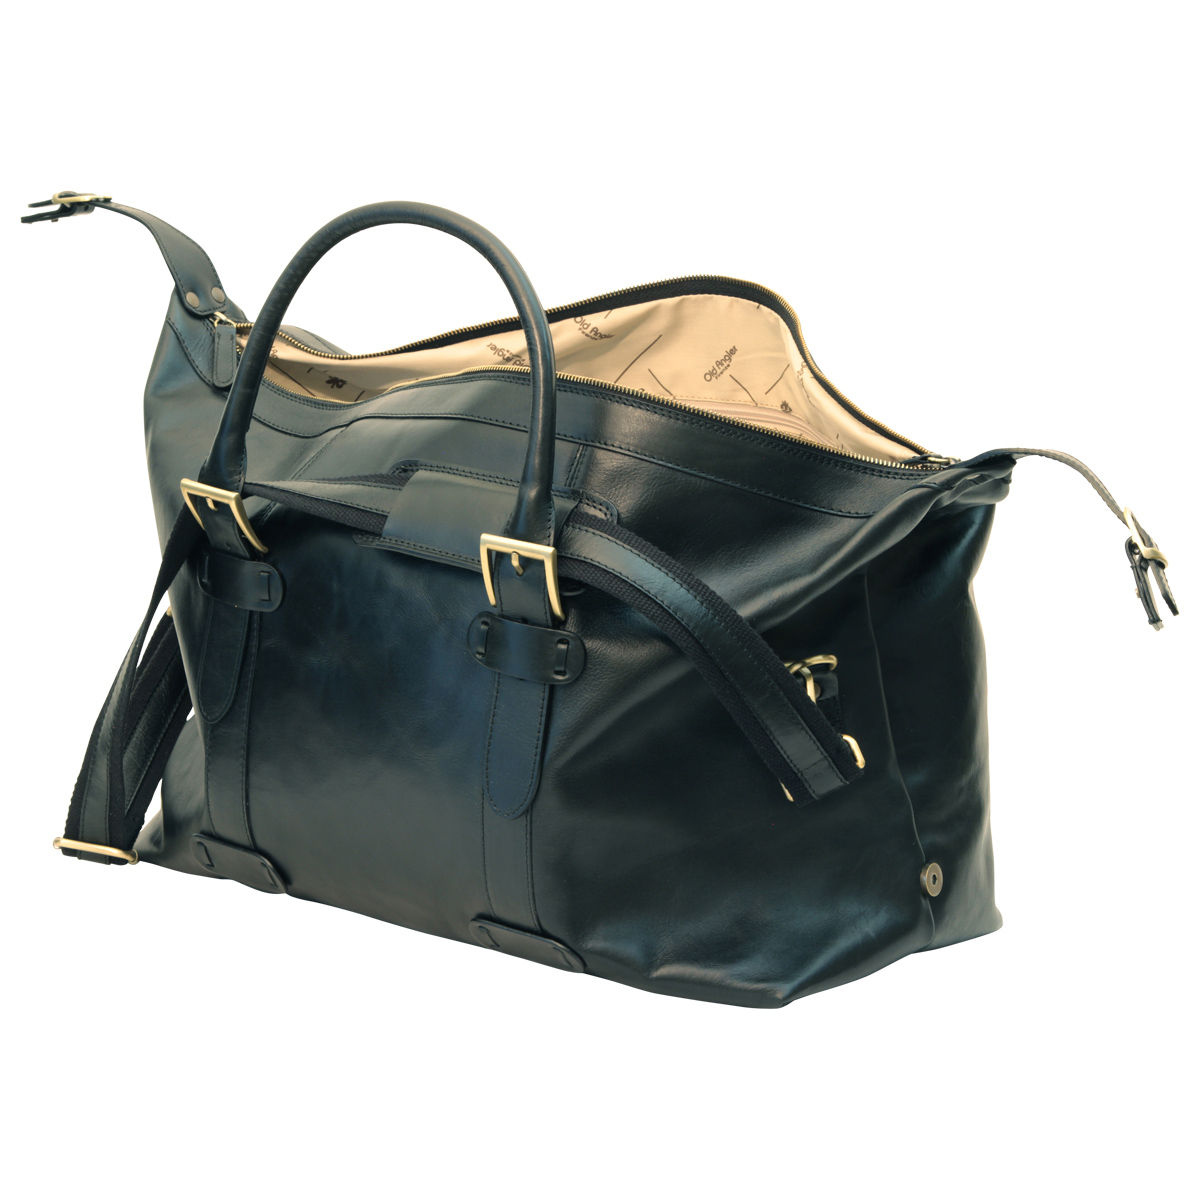 Cowhide leather Travel Bag - Black | 410689NE E | Old Angler Firenze